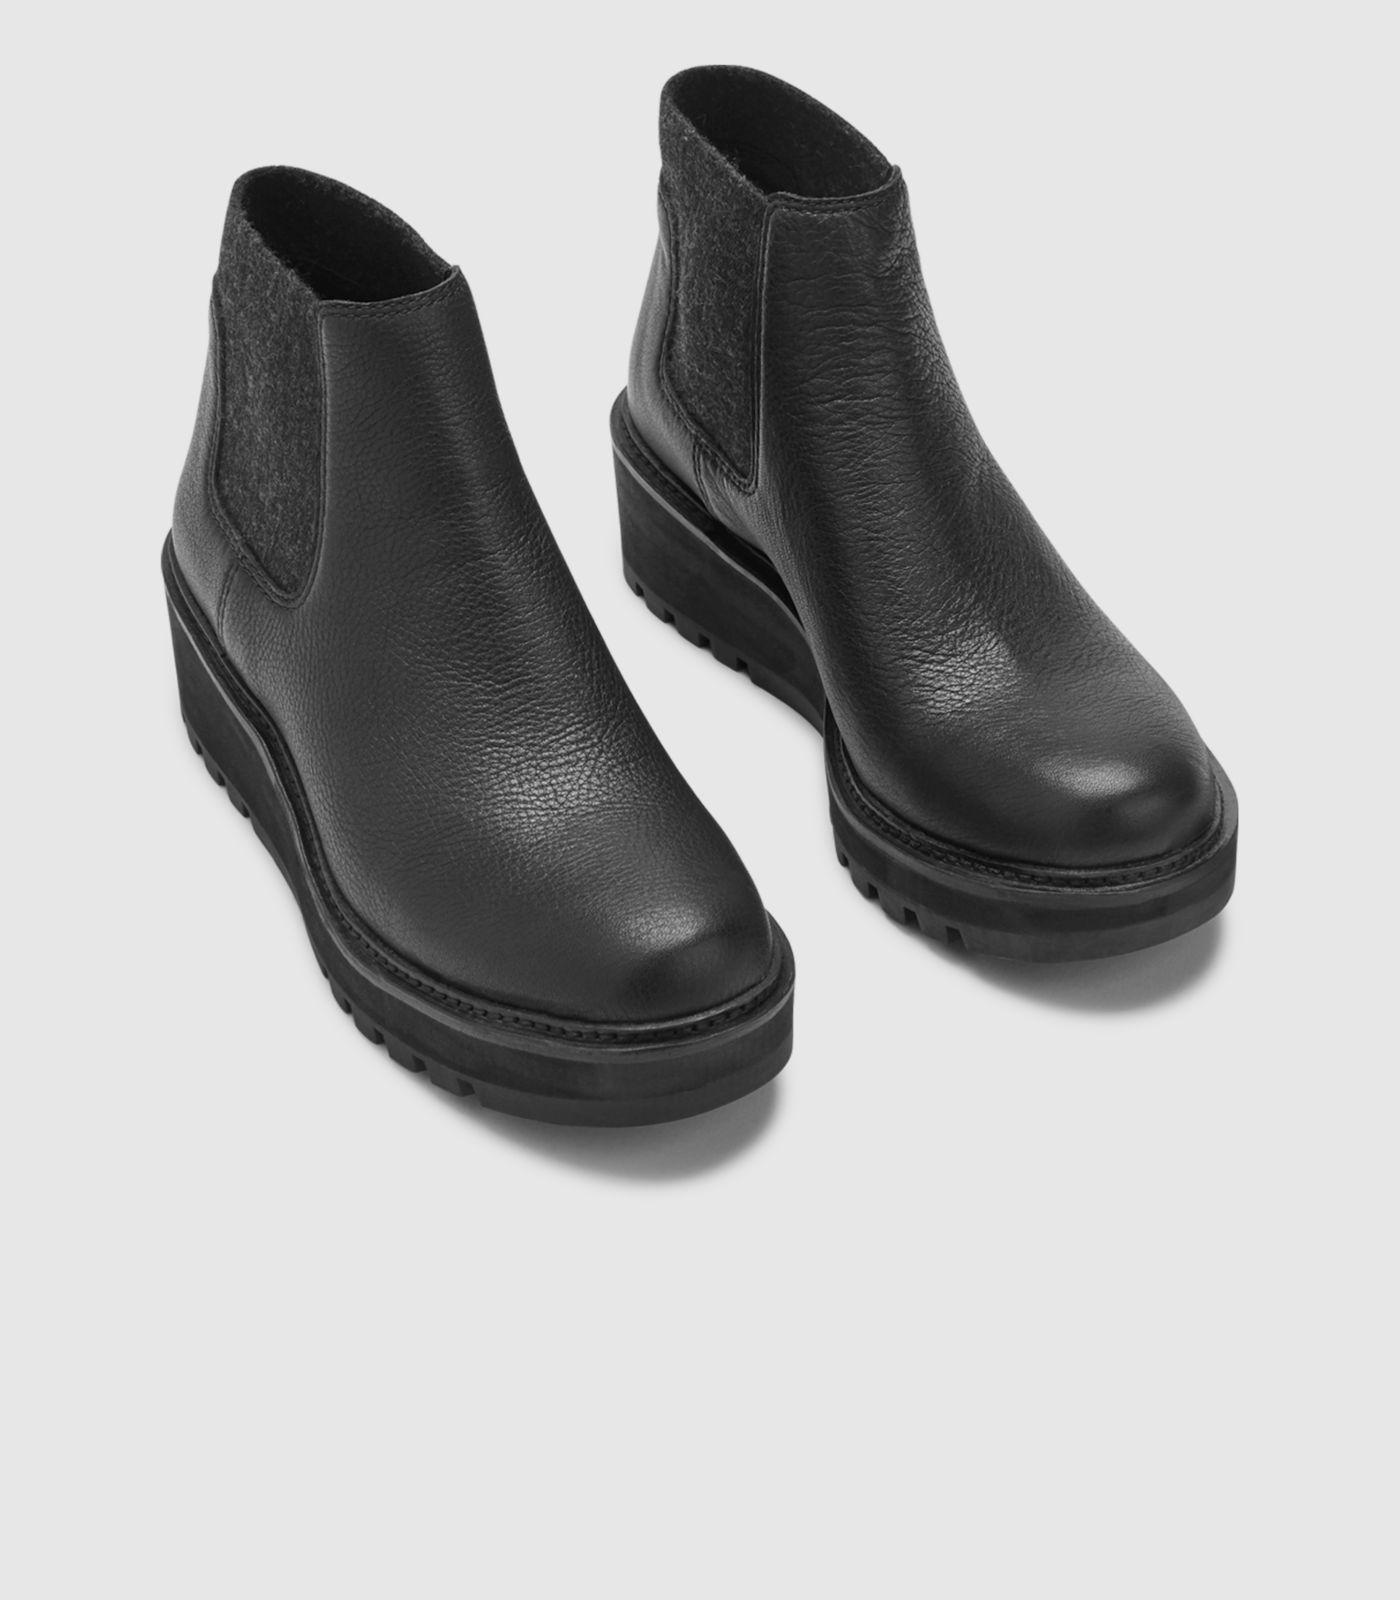 42367ba85c68 Eileen Fisher - Black Chelsea Wedge Bootie In Washed Leather - Lyst. View  fullscreen